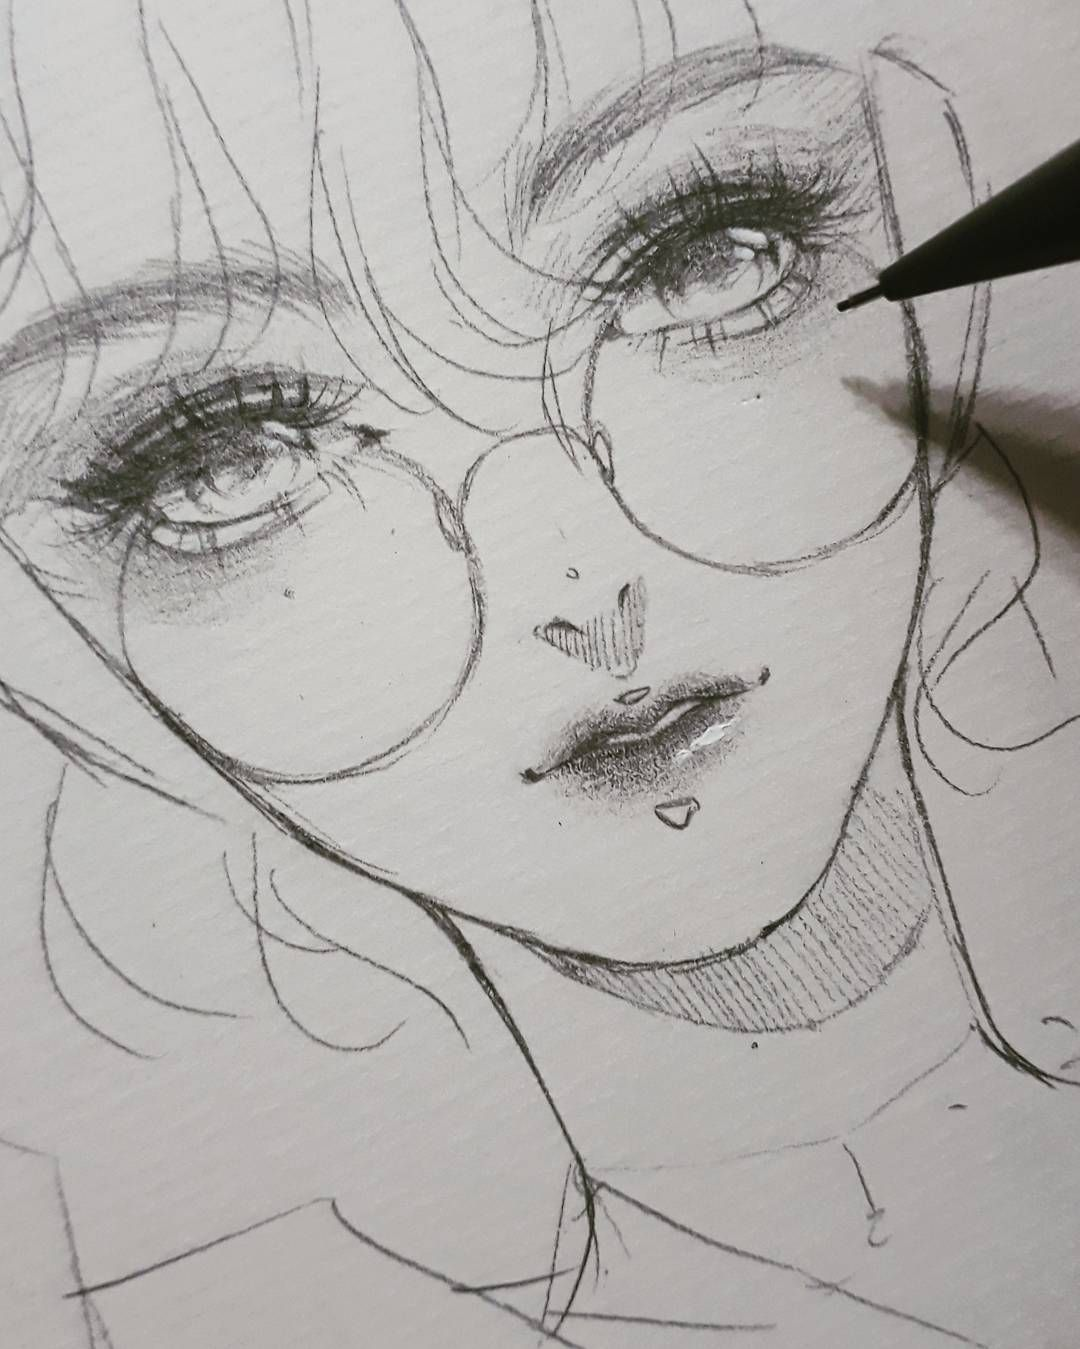 Koii On Instagram Nothing Special Tiring Day Pencil Illustration Anime Drawings Sketches 3d Drawings Anime Drawings